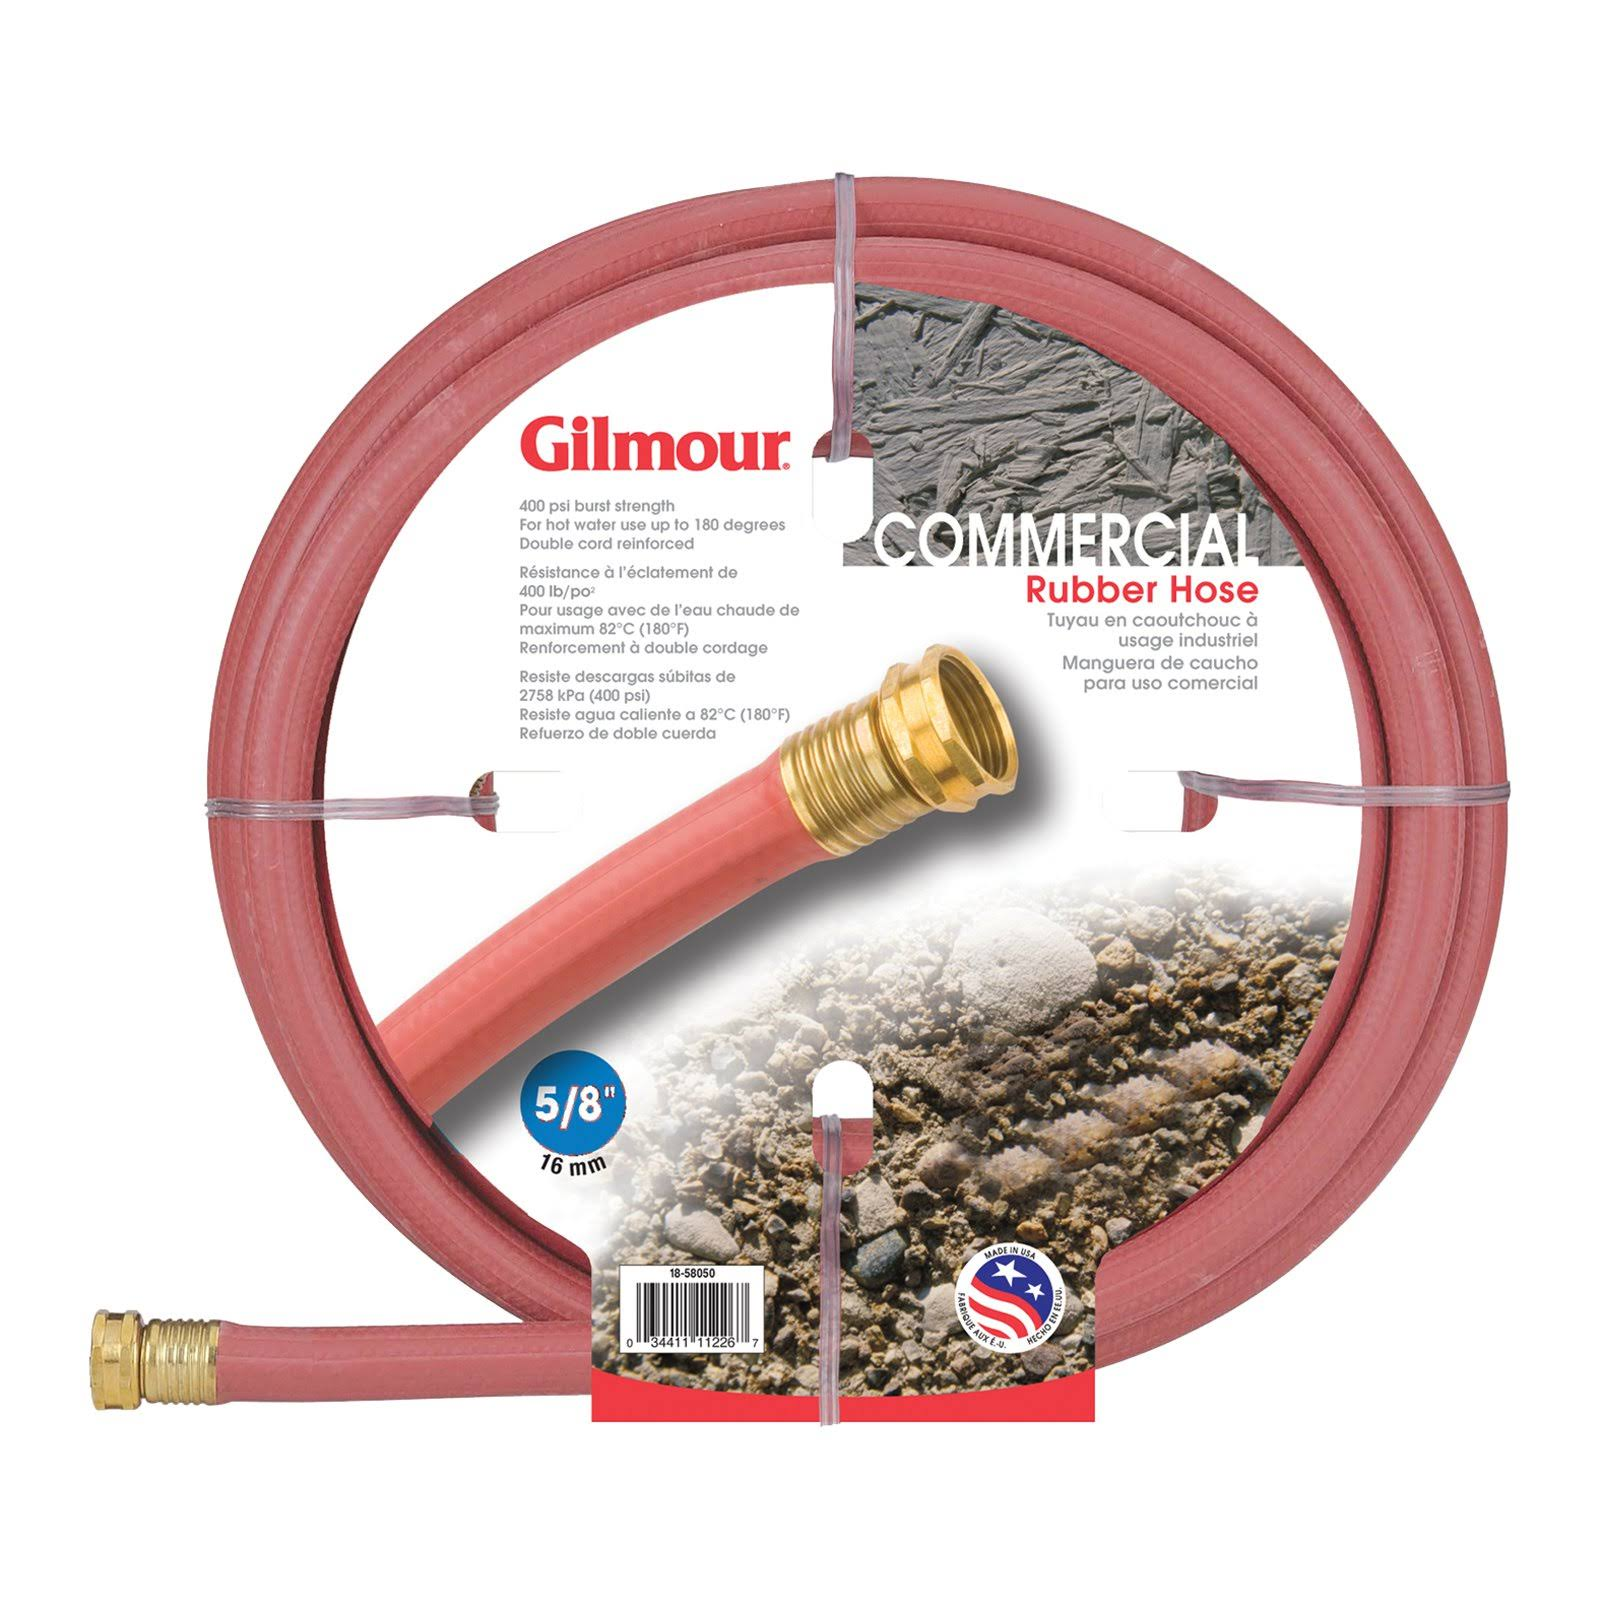 Gilmour Commercial Hot Water Rubber Hose - 25'